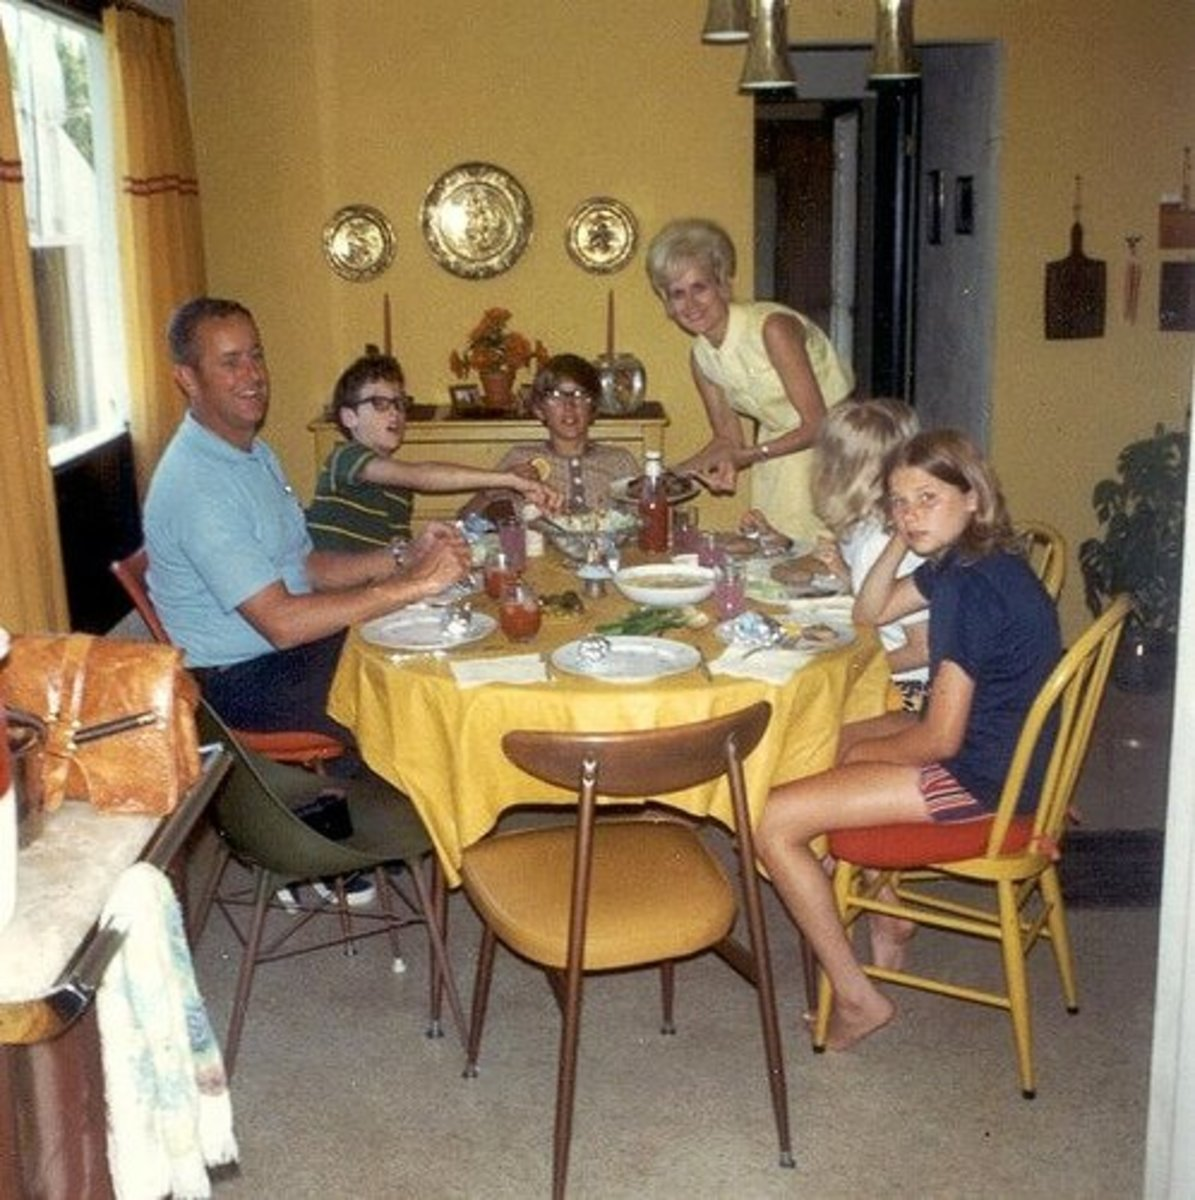 Family Meal Time Together